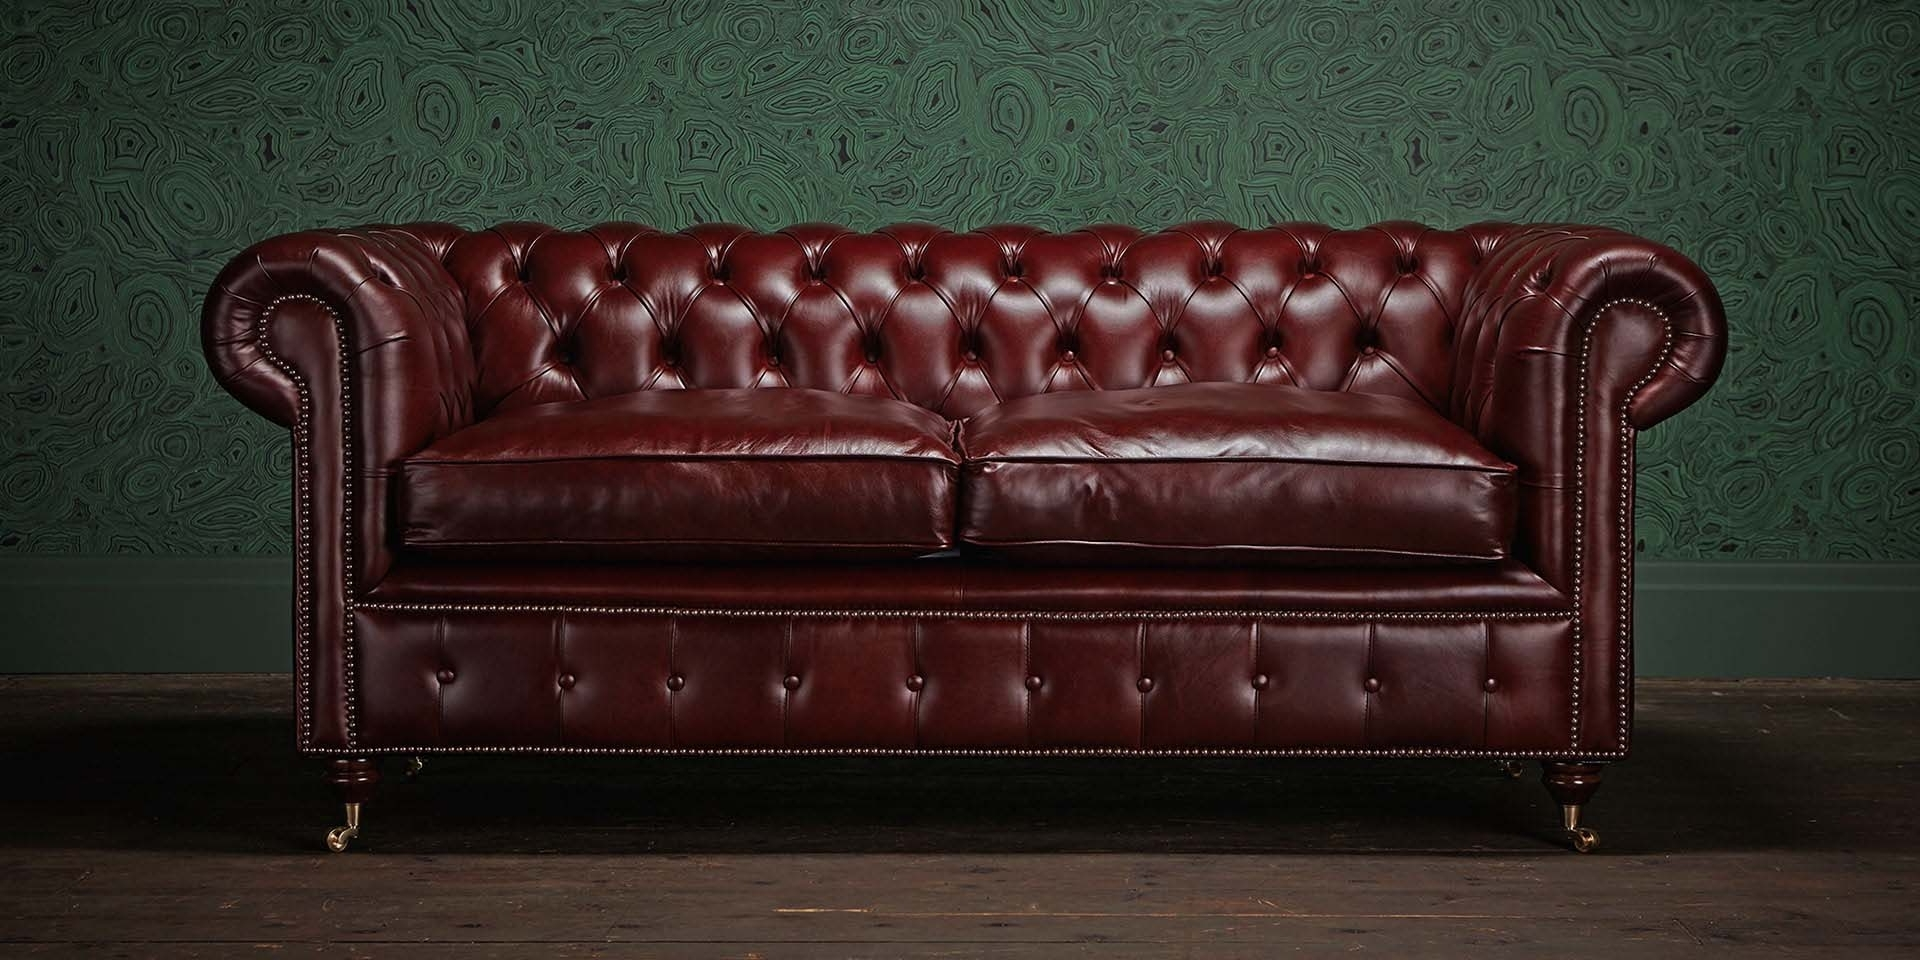 2018 Leather Chesterfield Sofas Within Original Chesterfield Sofa – Home And Textiles (View 1 of 20)